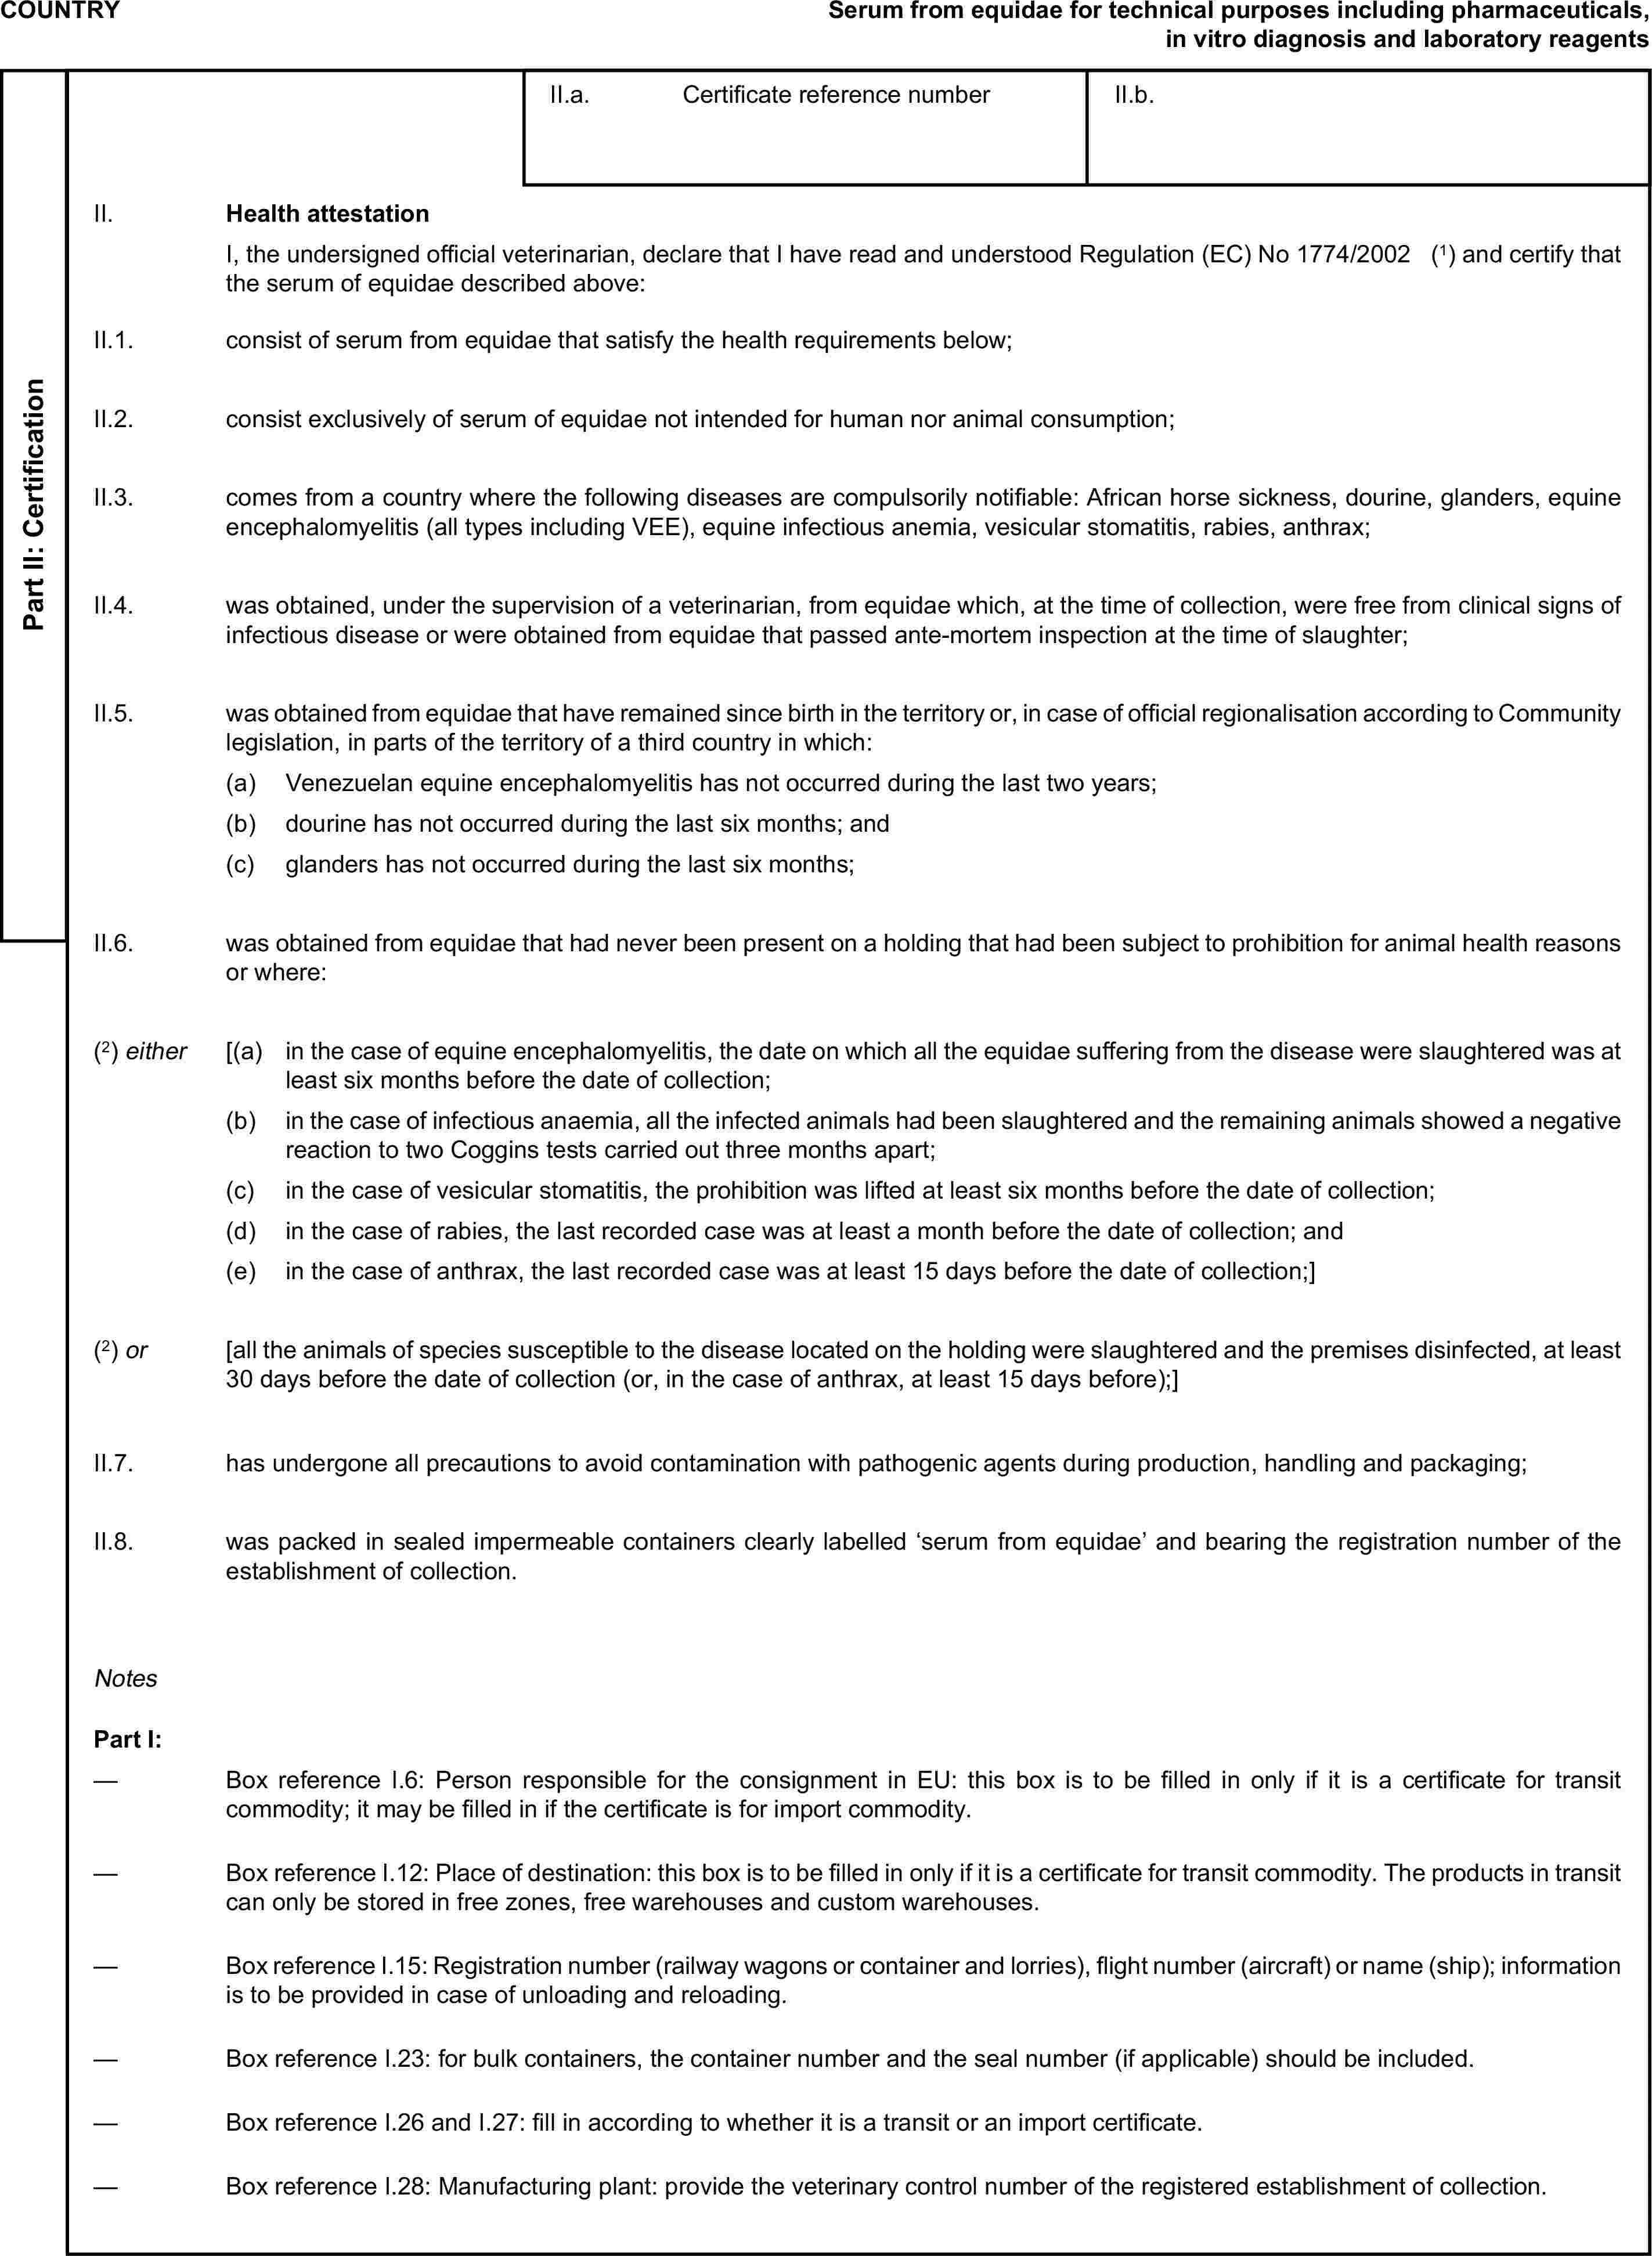 COUNTRYSerum from equidae for technical purposes including pharmaceuticals, in vitro diagnosis and laboratory reagentsPart II: CertificationII.a. Certificate reference numberII.b.II. Health attestationI, the undersigned official veterinarian, declare that I have read and understood Regulation (EC) No1774/2002(1) and certify that the serum of equidae described above:II.1. consist of serum from equidae that satisfy the health requirements below;II.2. consist exclusively of serum of equidae not intended for human nor animal consumption;II.3. comes from a country where the following diseases are compulsorily notifiable: African horse sickness, dourine, glanders, equine encephalomyelitis (all types including VEE), equine infectious anemia, vesicular stomatitis, rabies, anthrax;II.4. was obtained, under the supervision of a veterinarian, from equidae which, at the time of collection, were free from clinical signs of infectious disease or were obtained from equidae that passed ante-mortem inspection at the time of slaughter;II.5. was obtained from equidae that have remained since birth in the territory or, in case of official regionalisation according to Community legislation, in parts of the territory of a third country in which:(a) Venezuelan equine encephalomyelitis has not occurred during the last two years;(b) dourine has not occurred during the last six months; and(c) glanders has not occurred during the last six months;II.6. was obtained from equidae that had never been present on a holding that had been subject to prohibition for animal health reasons or where:(2) either [(a) in the case of equine encephalomyelitis, the date on which all the equidae suffering from the disease were slaughtered was at least six months before the date of collection;(b) in the case of infectious anaemia, all the infected animals had been slaughtered and the remaining animals showed a negative reaction to two Coggins tests carried out three months apart;(c) in the case of vesicular stom